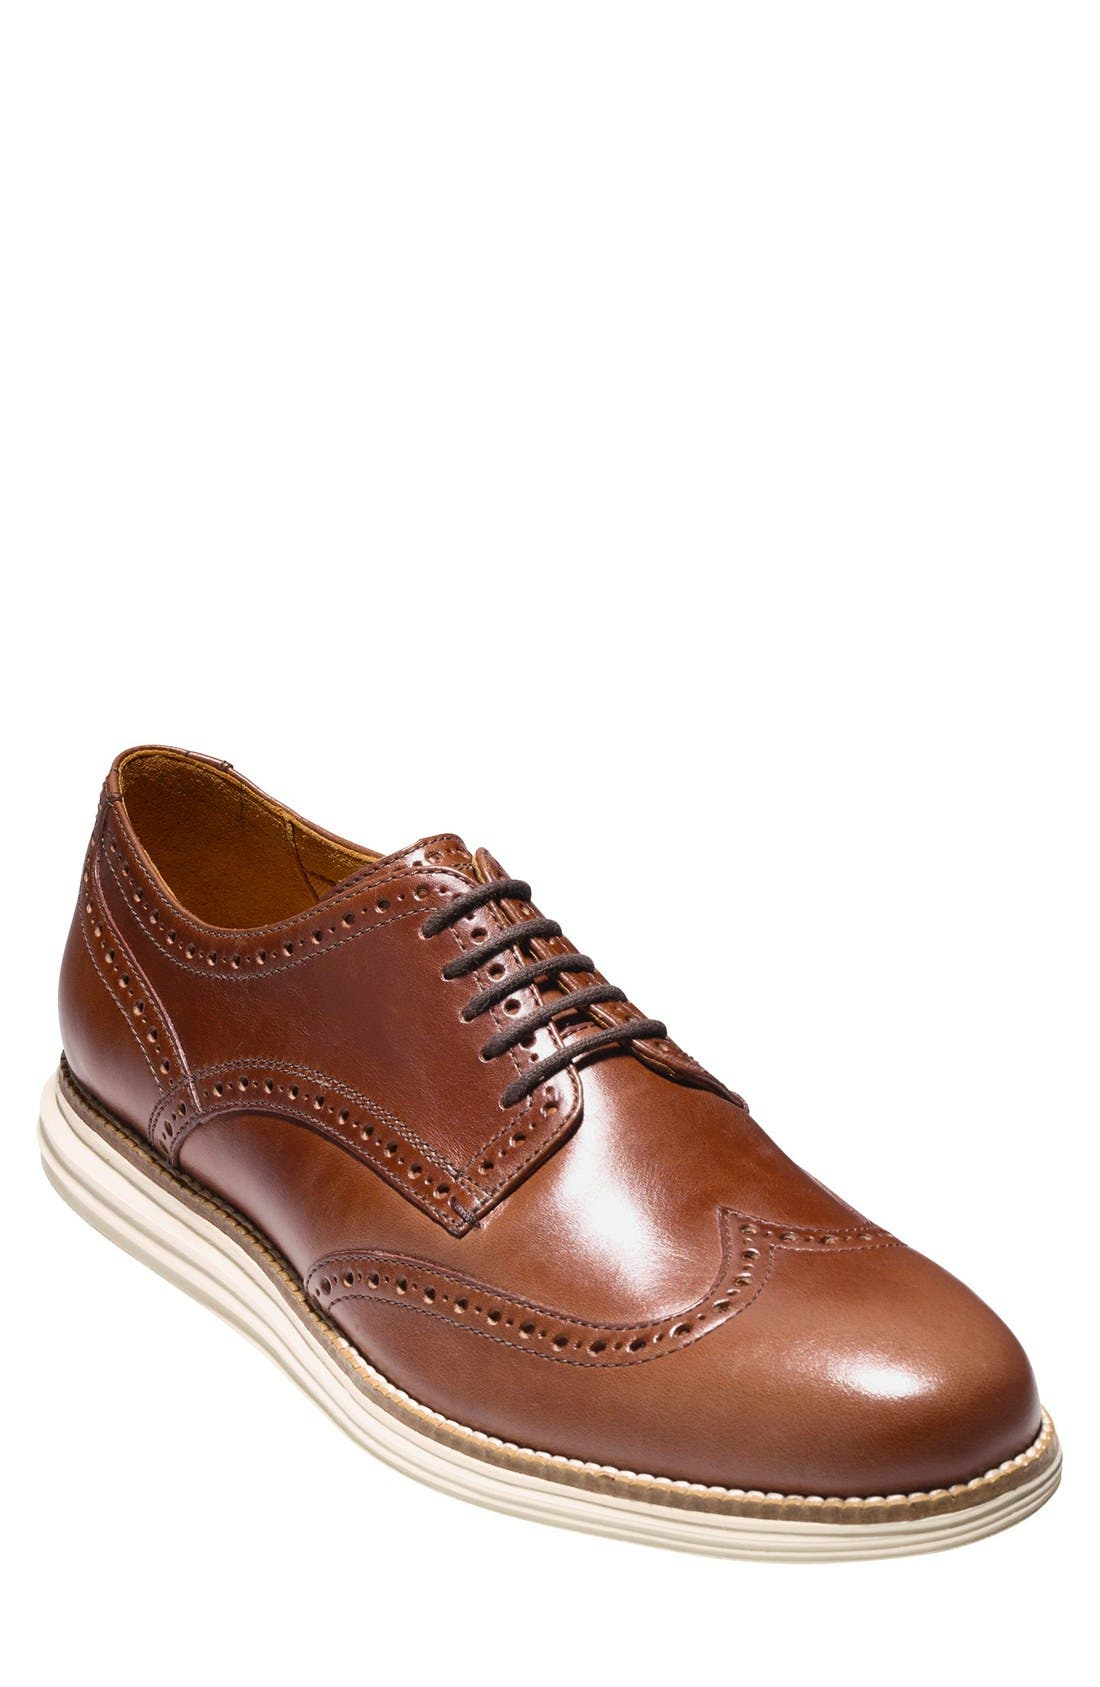 Alternate Image 1 Selected - Cole Haan 'Original Grand' Wingtip (Men)